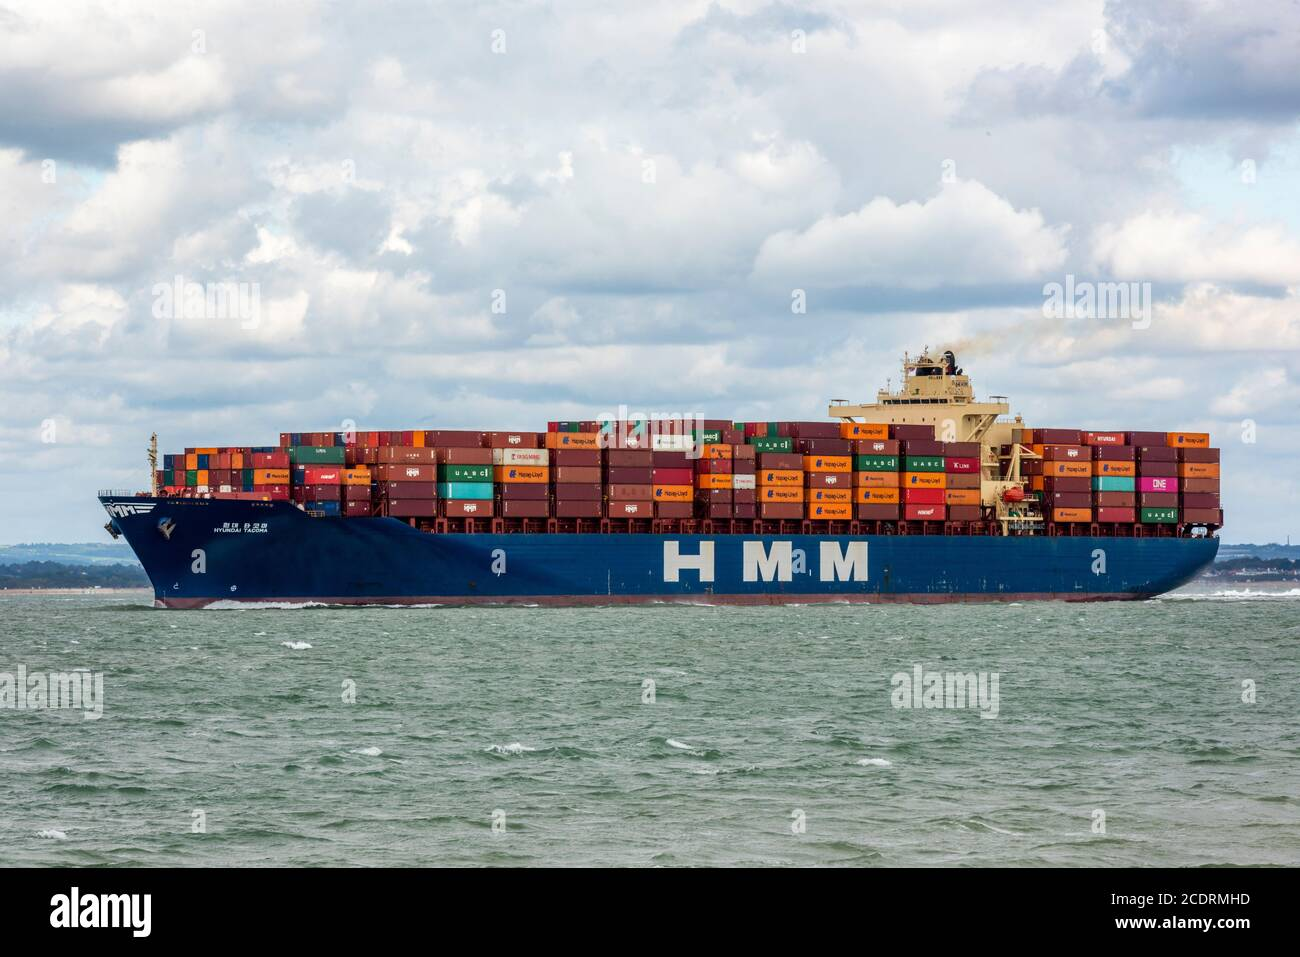 a large container cargo ship entering the solent and the port of southampton docks on the south coast of england, Stock Photo